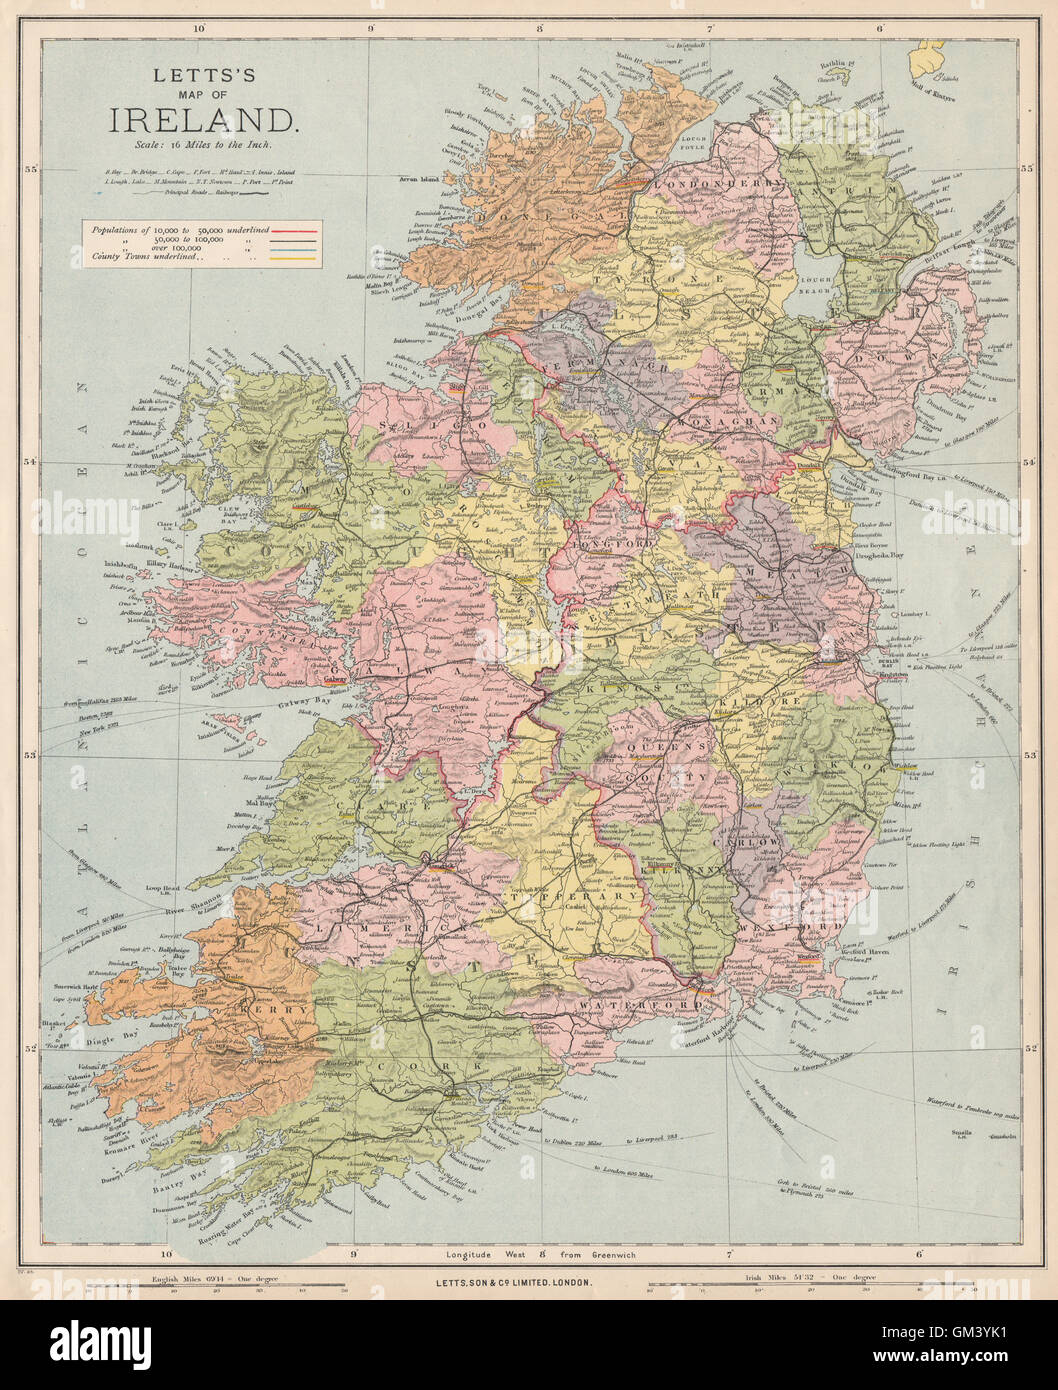 Map Of Ireland With Roads.Ireland Showing Roads Railways Counties Provinces Letts 1889